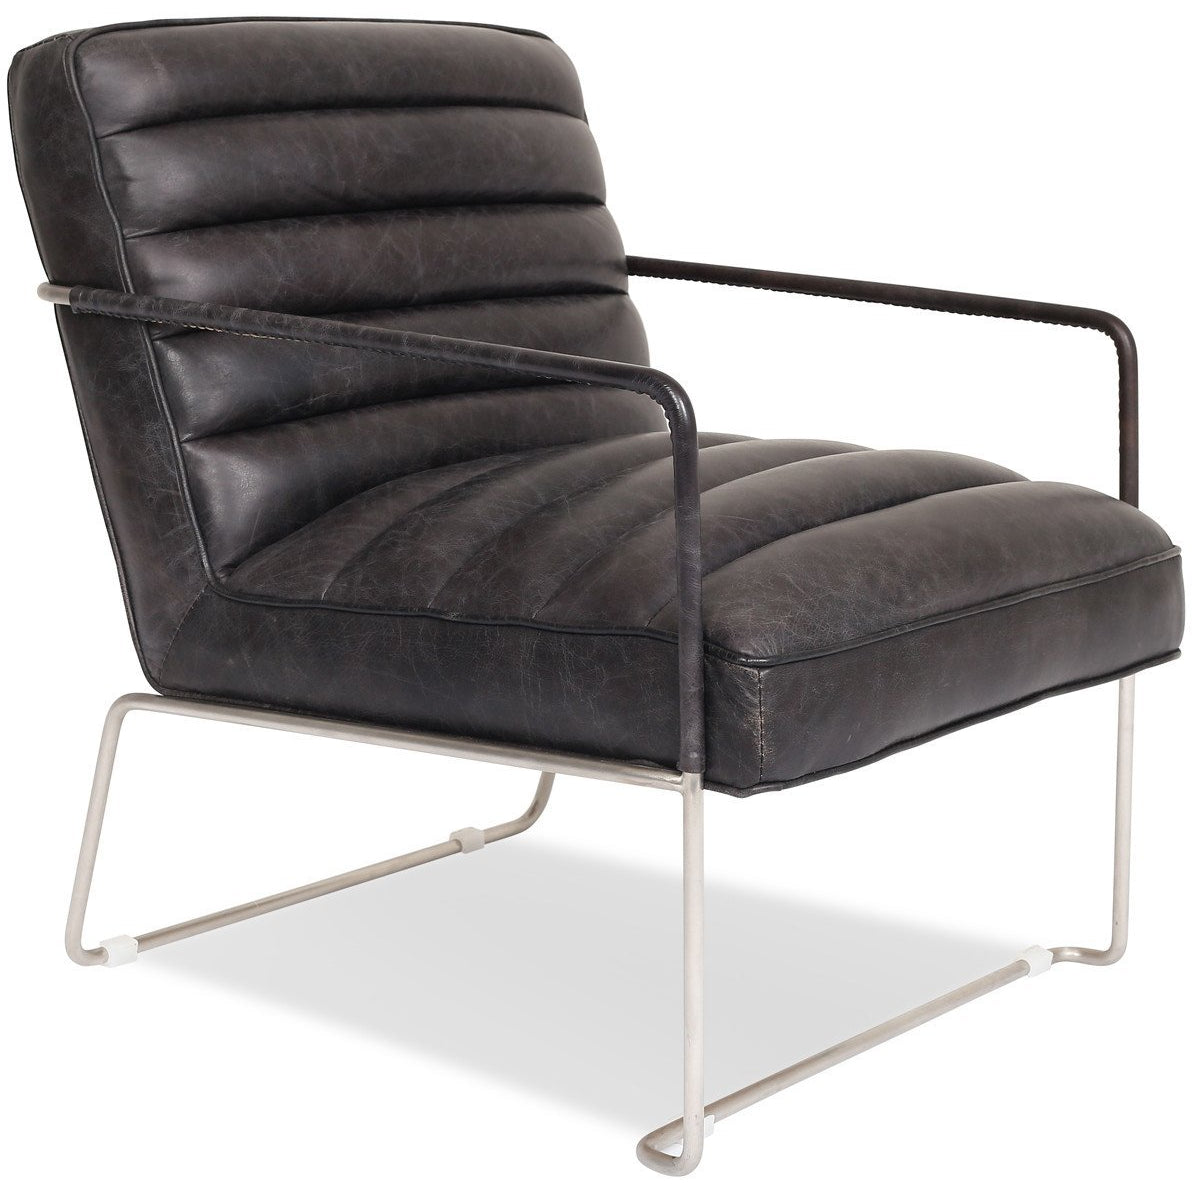 Edloe Finch Kennedy Modern Leather Accent Chair